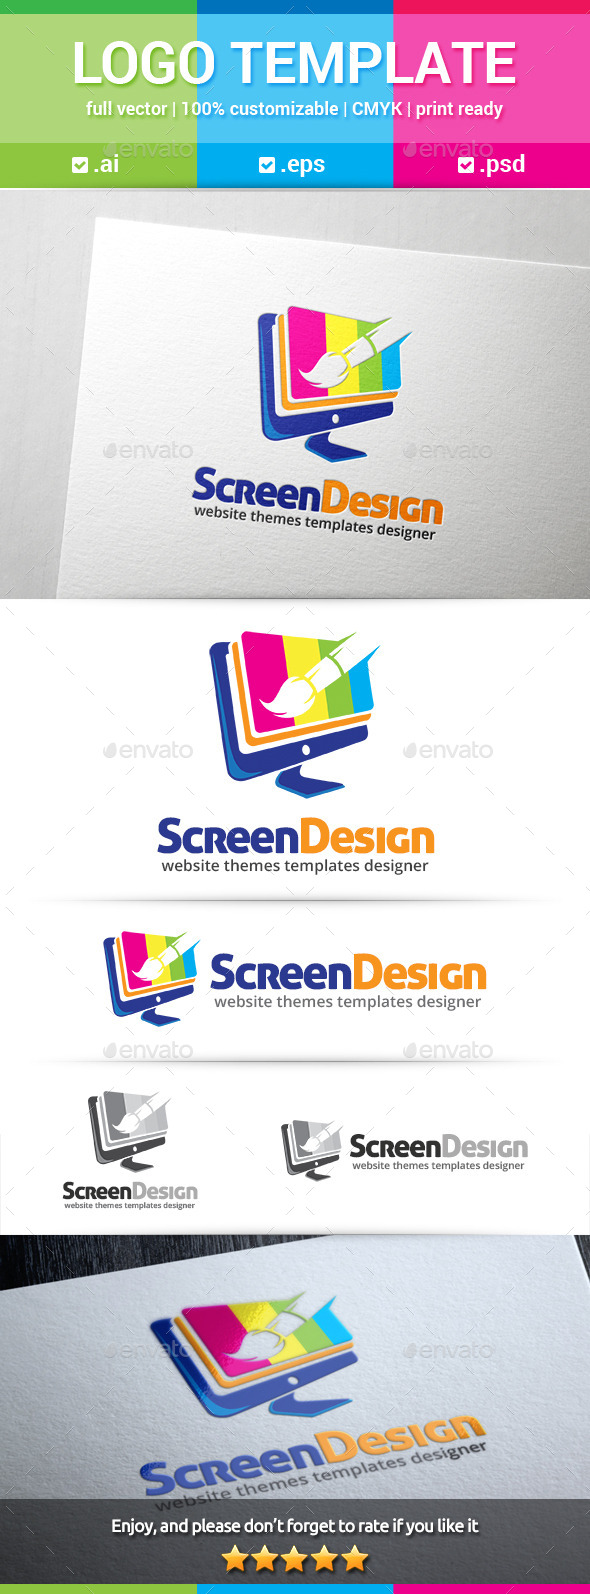 GraphicRiver Screen Design Logo 10588321